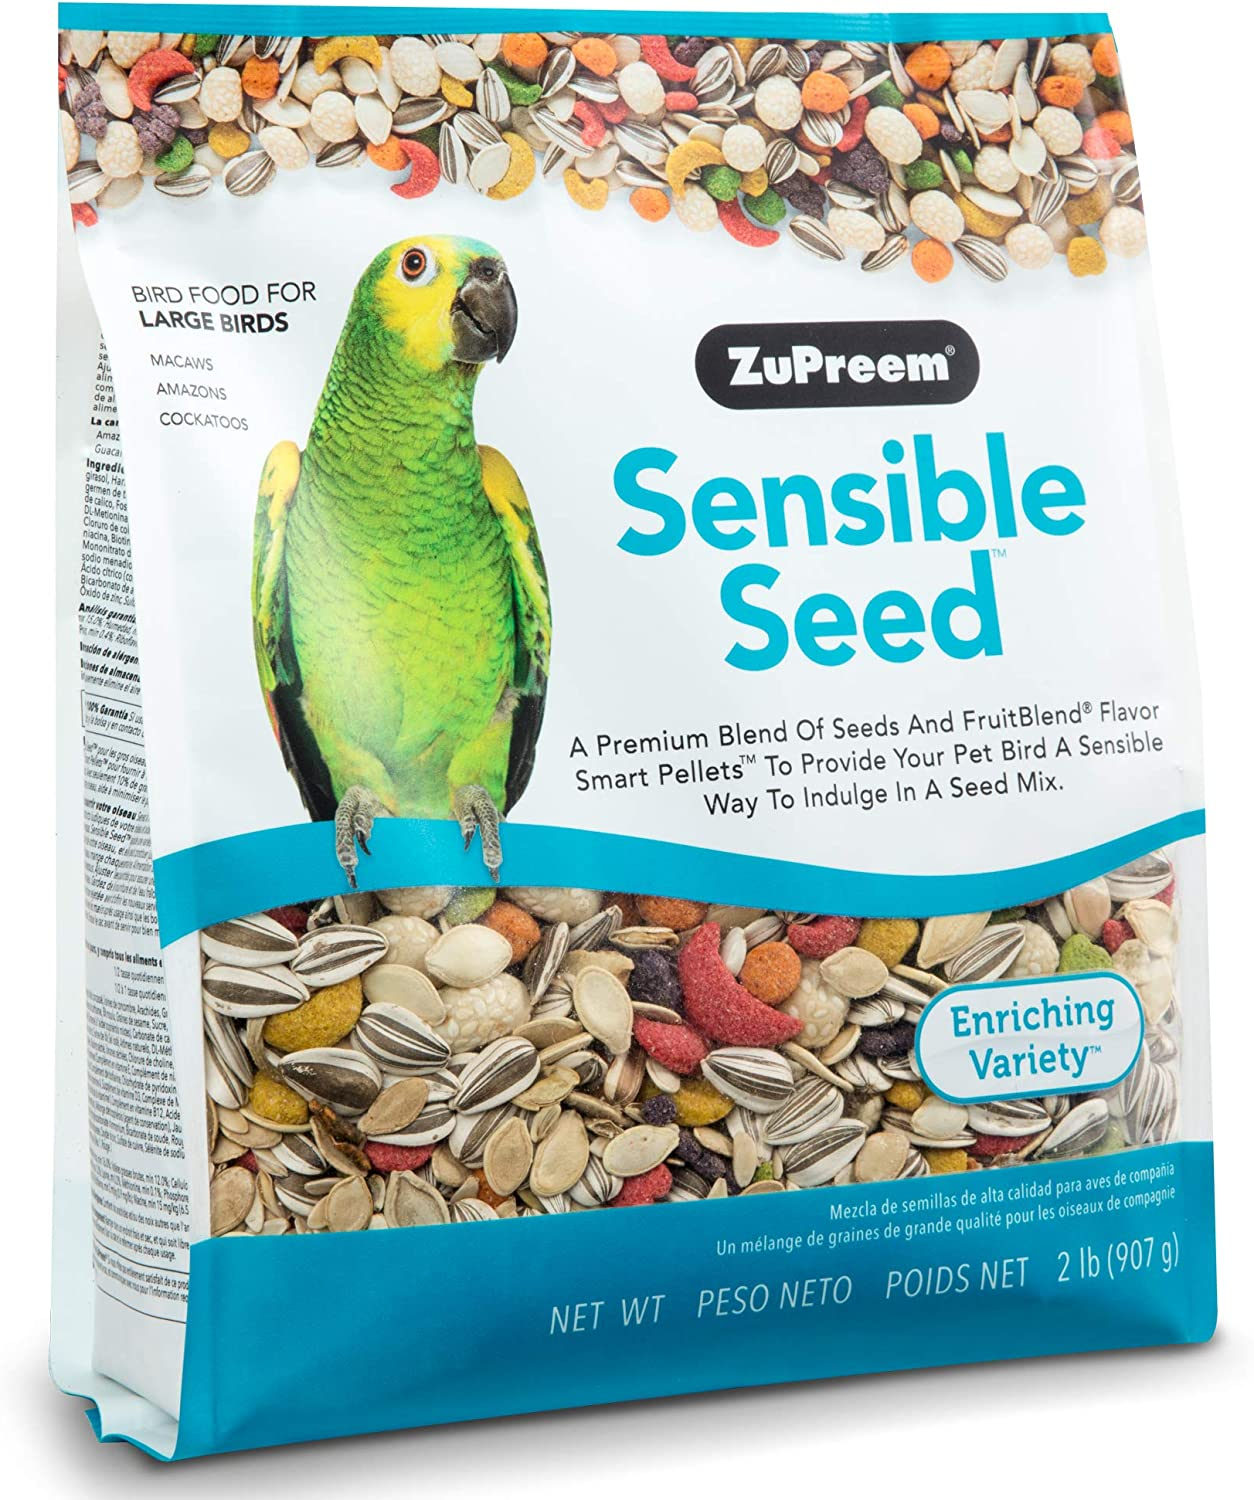 ZuPreem Sensible Seed Bird Food for Large Birds, 2 lb Bag - Premium Blend of Seeds and FruitBlend Pellets for Amazons, Macaws, Cockatoos